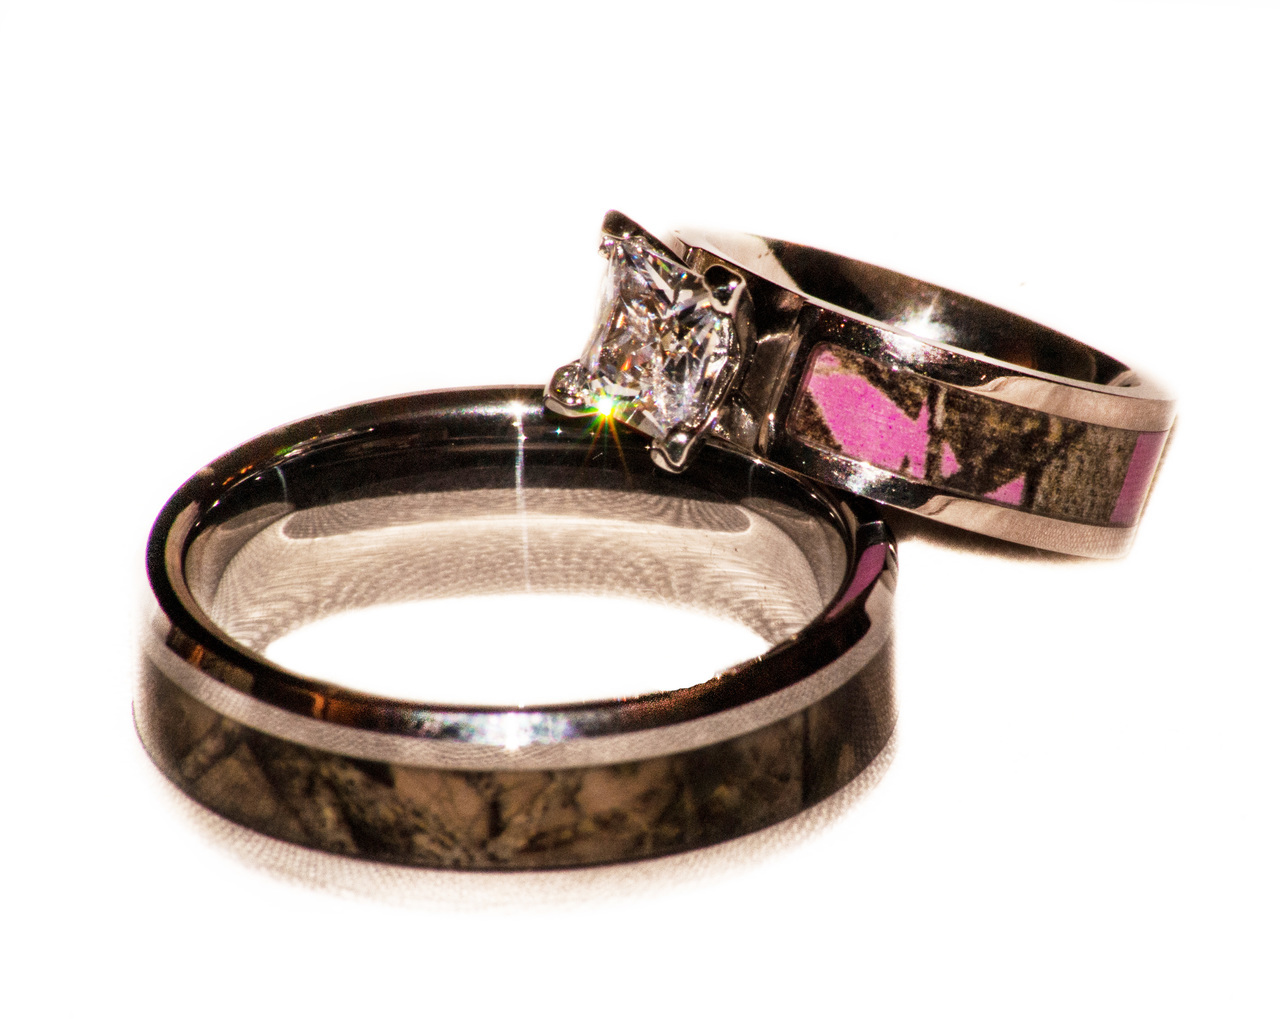 Camo Wedding Set With Pink Stone Ring And Band